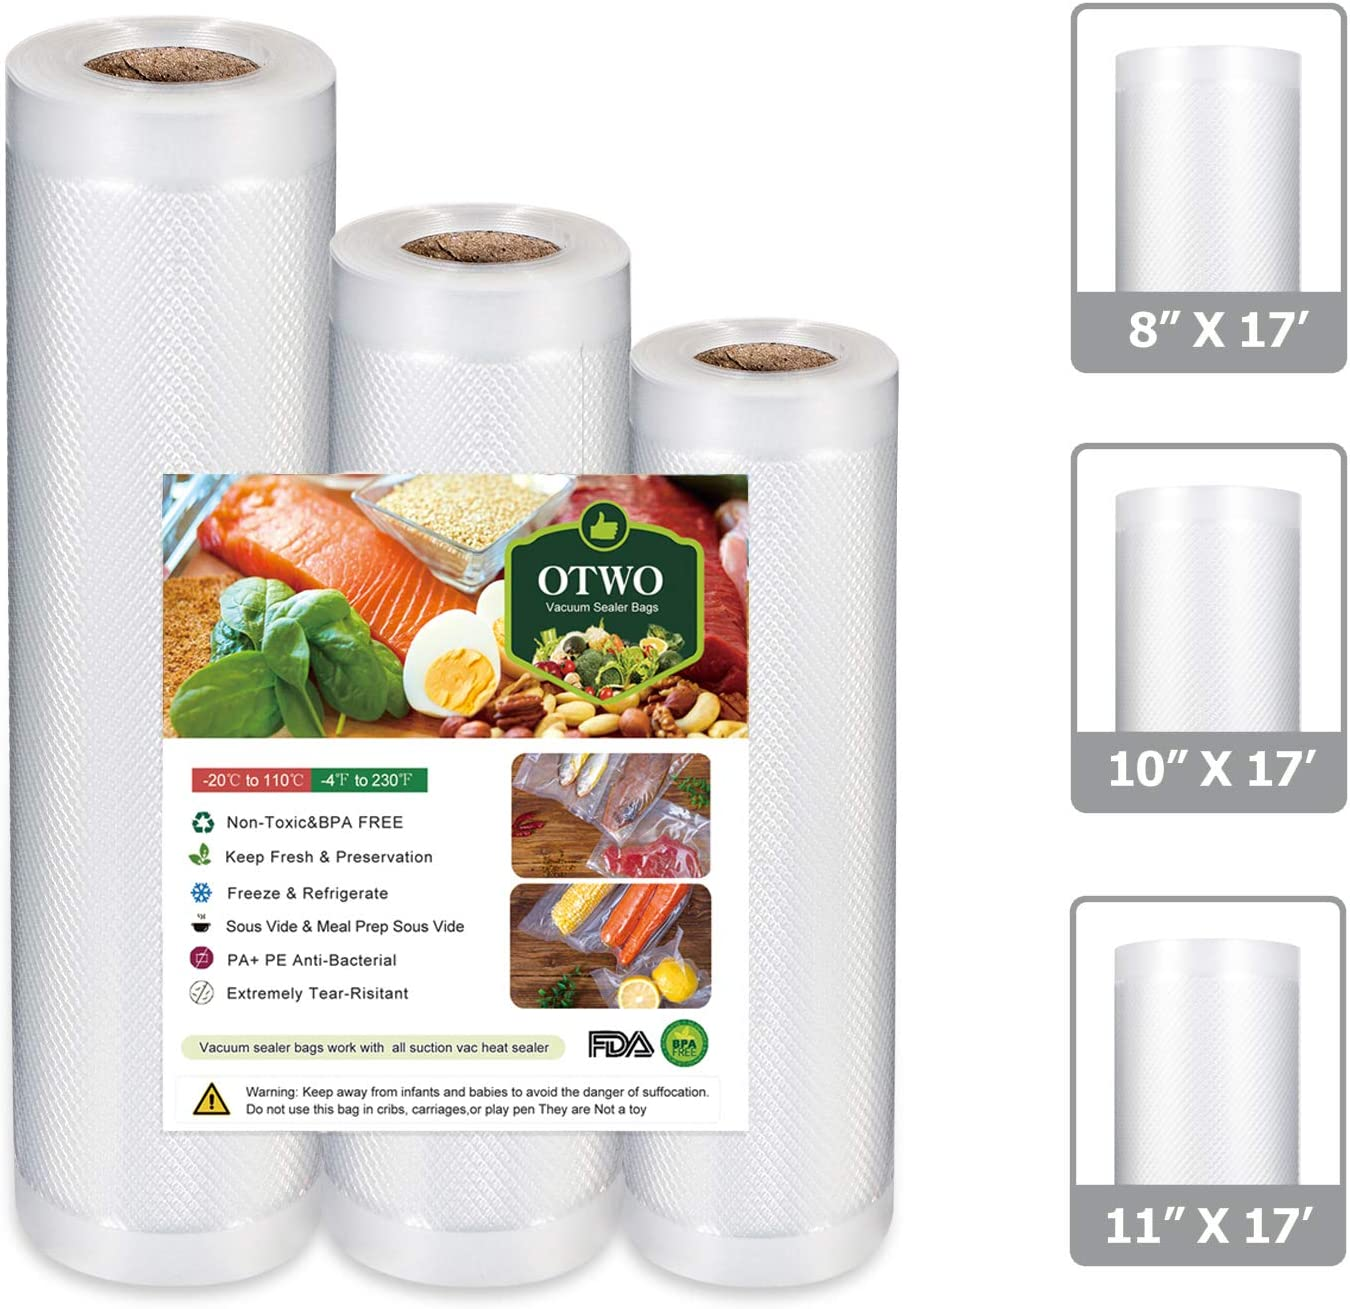 """OTWO Vacuum Sealer Bags for Food Saver 8 x 17', 10"""" x 17', 11"""" x 17' for Food Save Vacuum Sealer 3 Rolls Commercial Grade Plastic, Food Vac Storage & Seal, Airtight Vacuum Saver, Microwave & Freezer Safe.Help You To Be a Good Cooker and Your Family Healthier"""